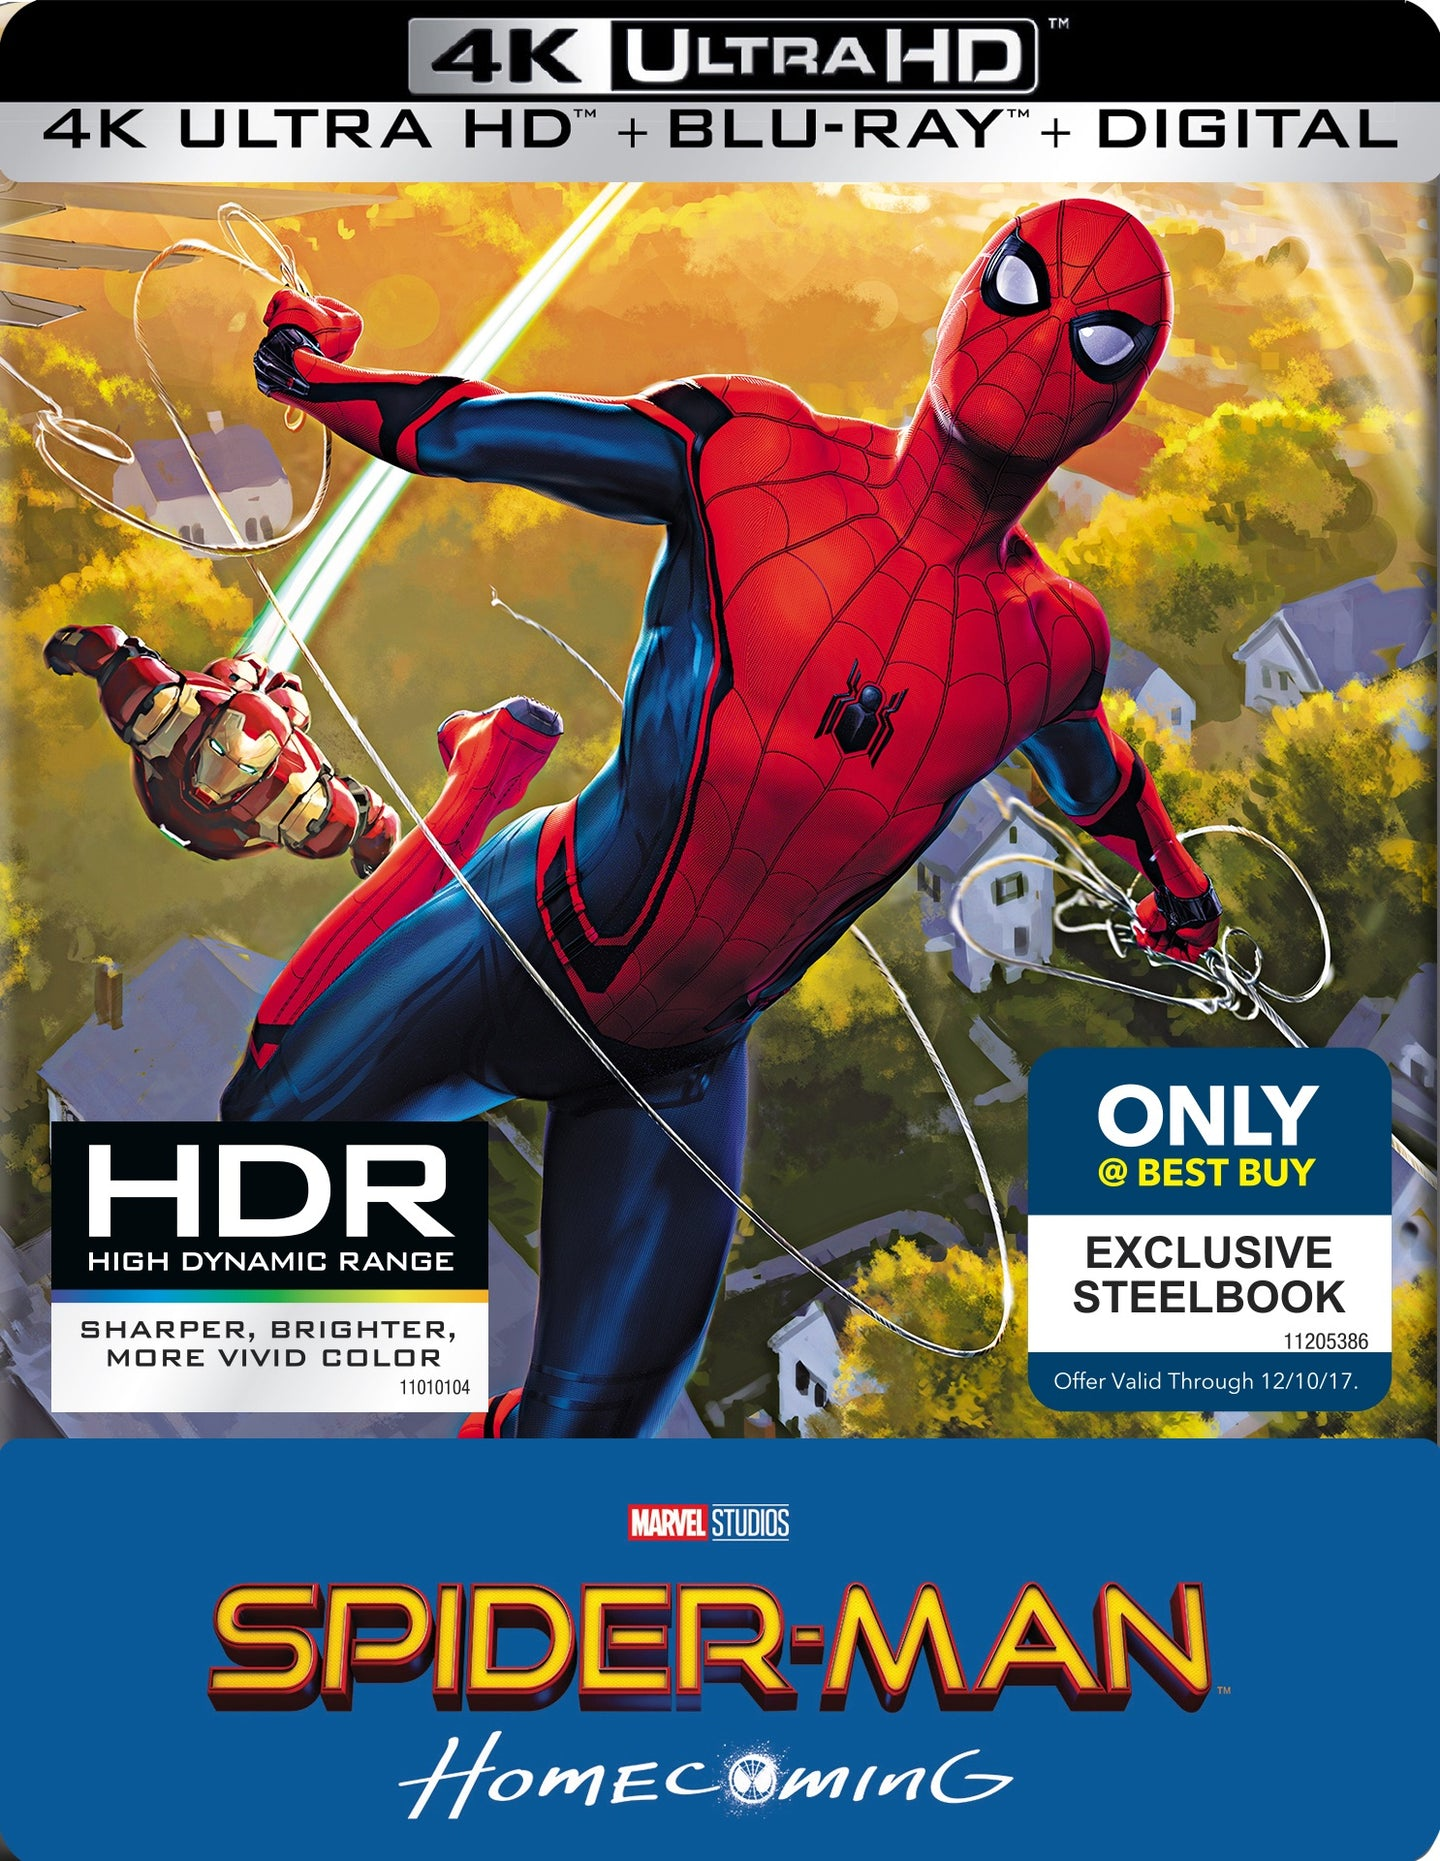 Spider-Man: Homecoming (2017) Vudu or Movies Anywhere 4K code